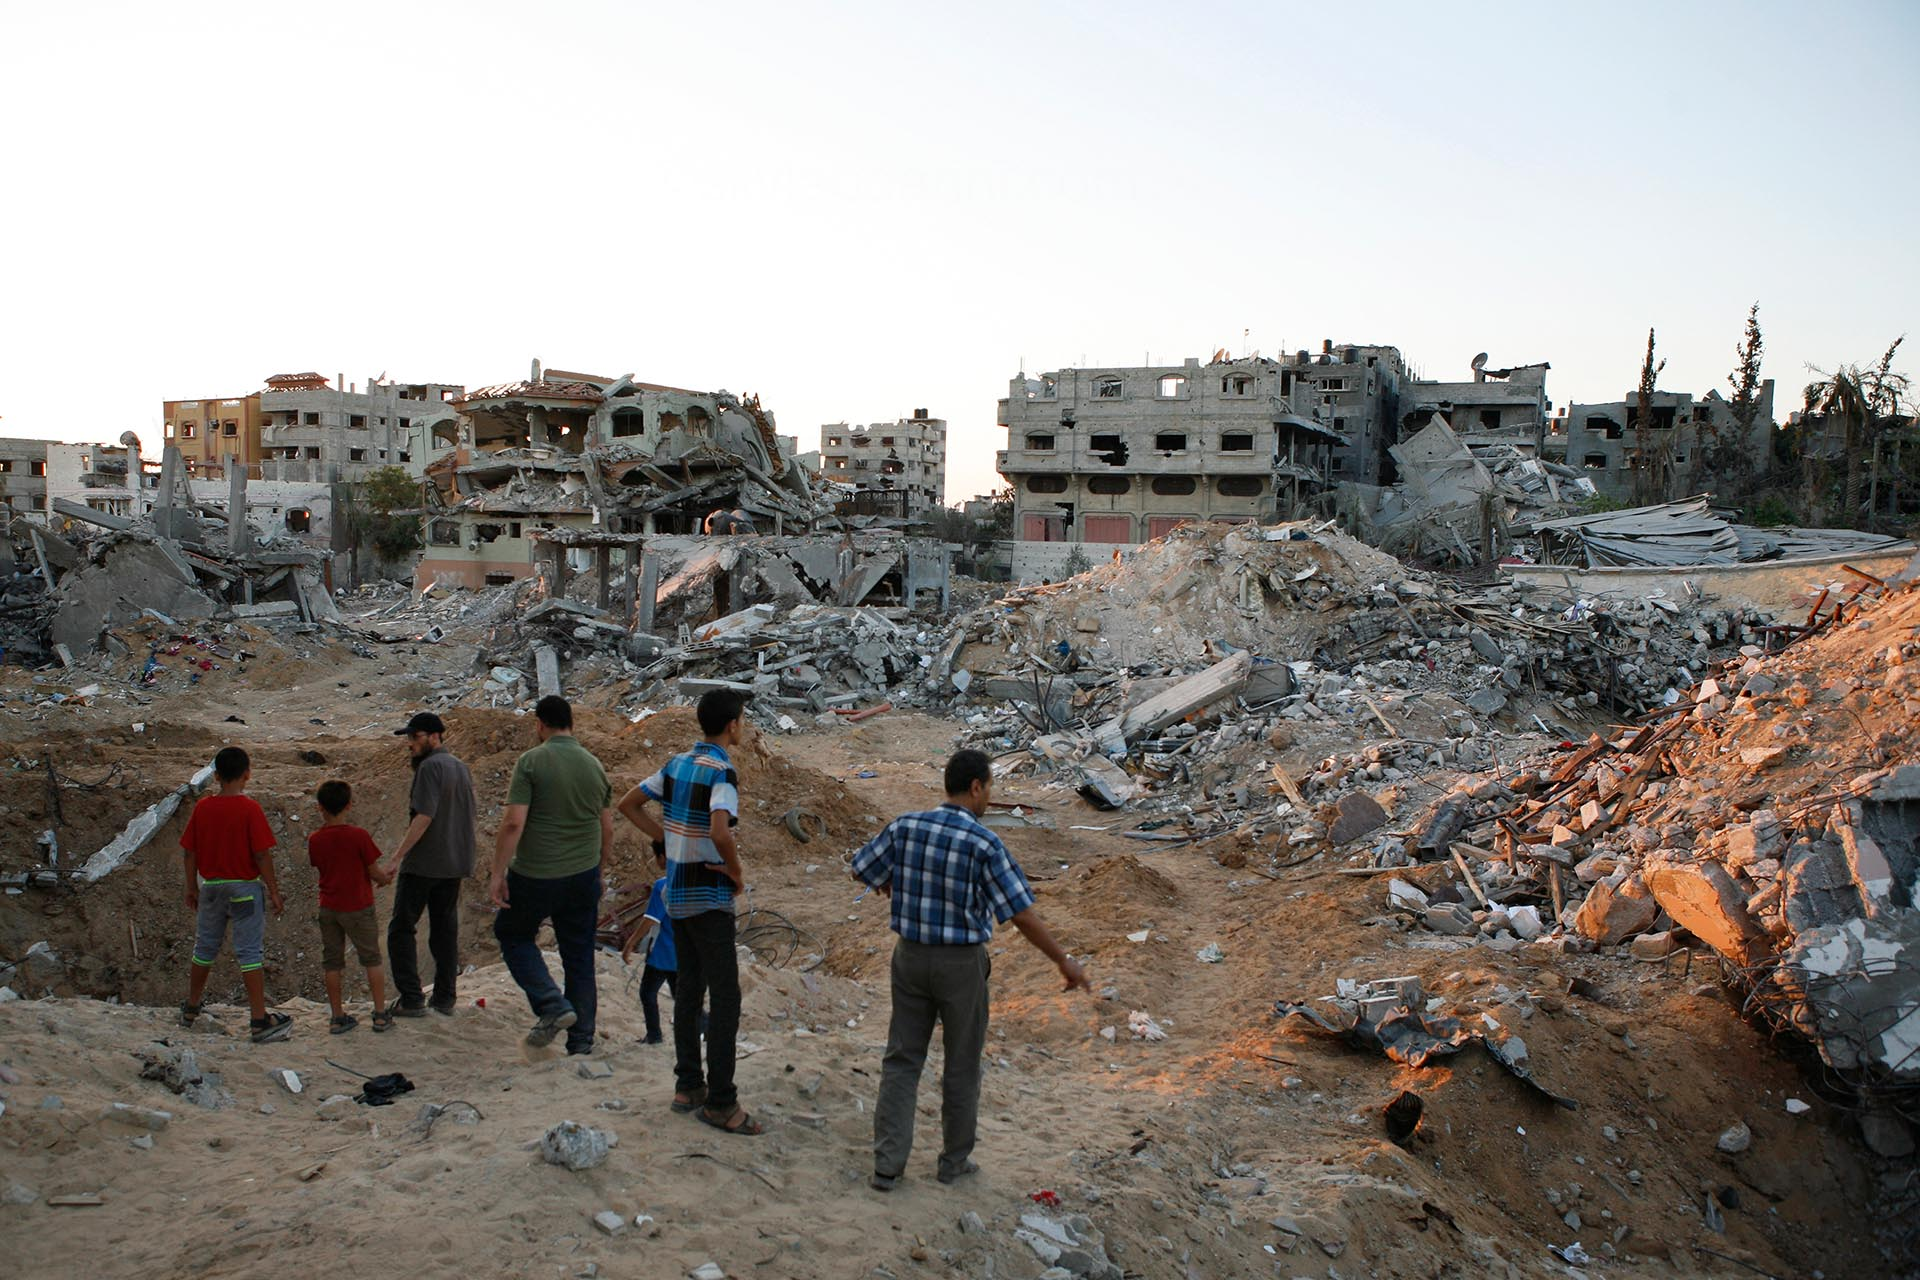 A group of men surveys the destruction in Shujayea, August 2014